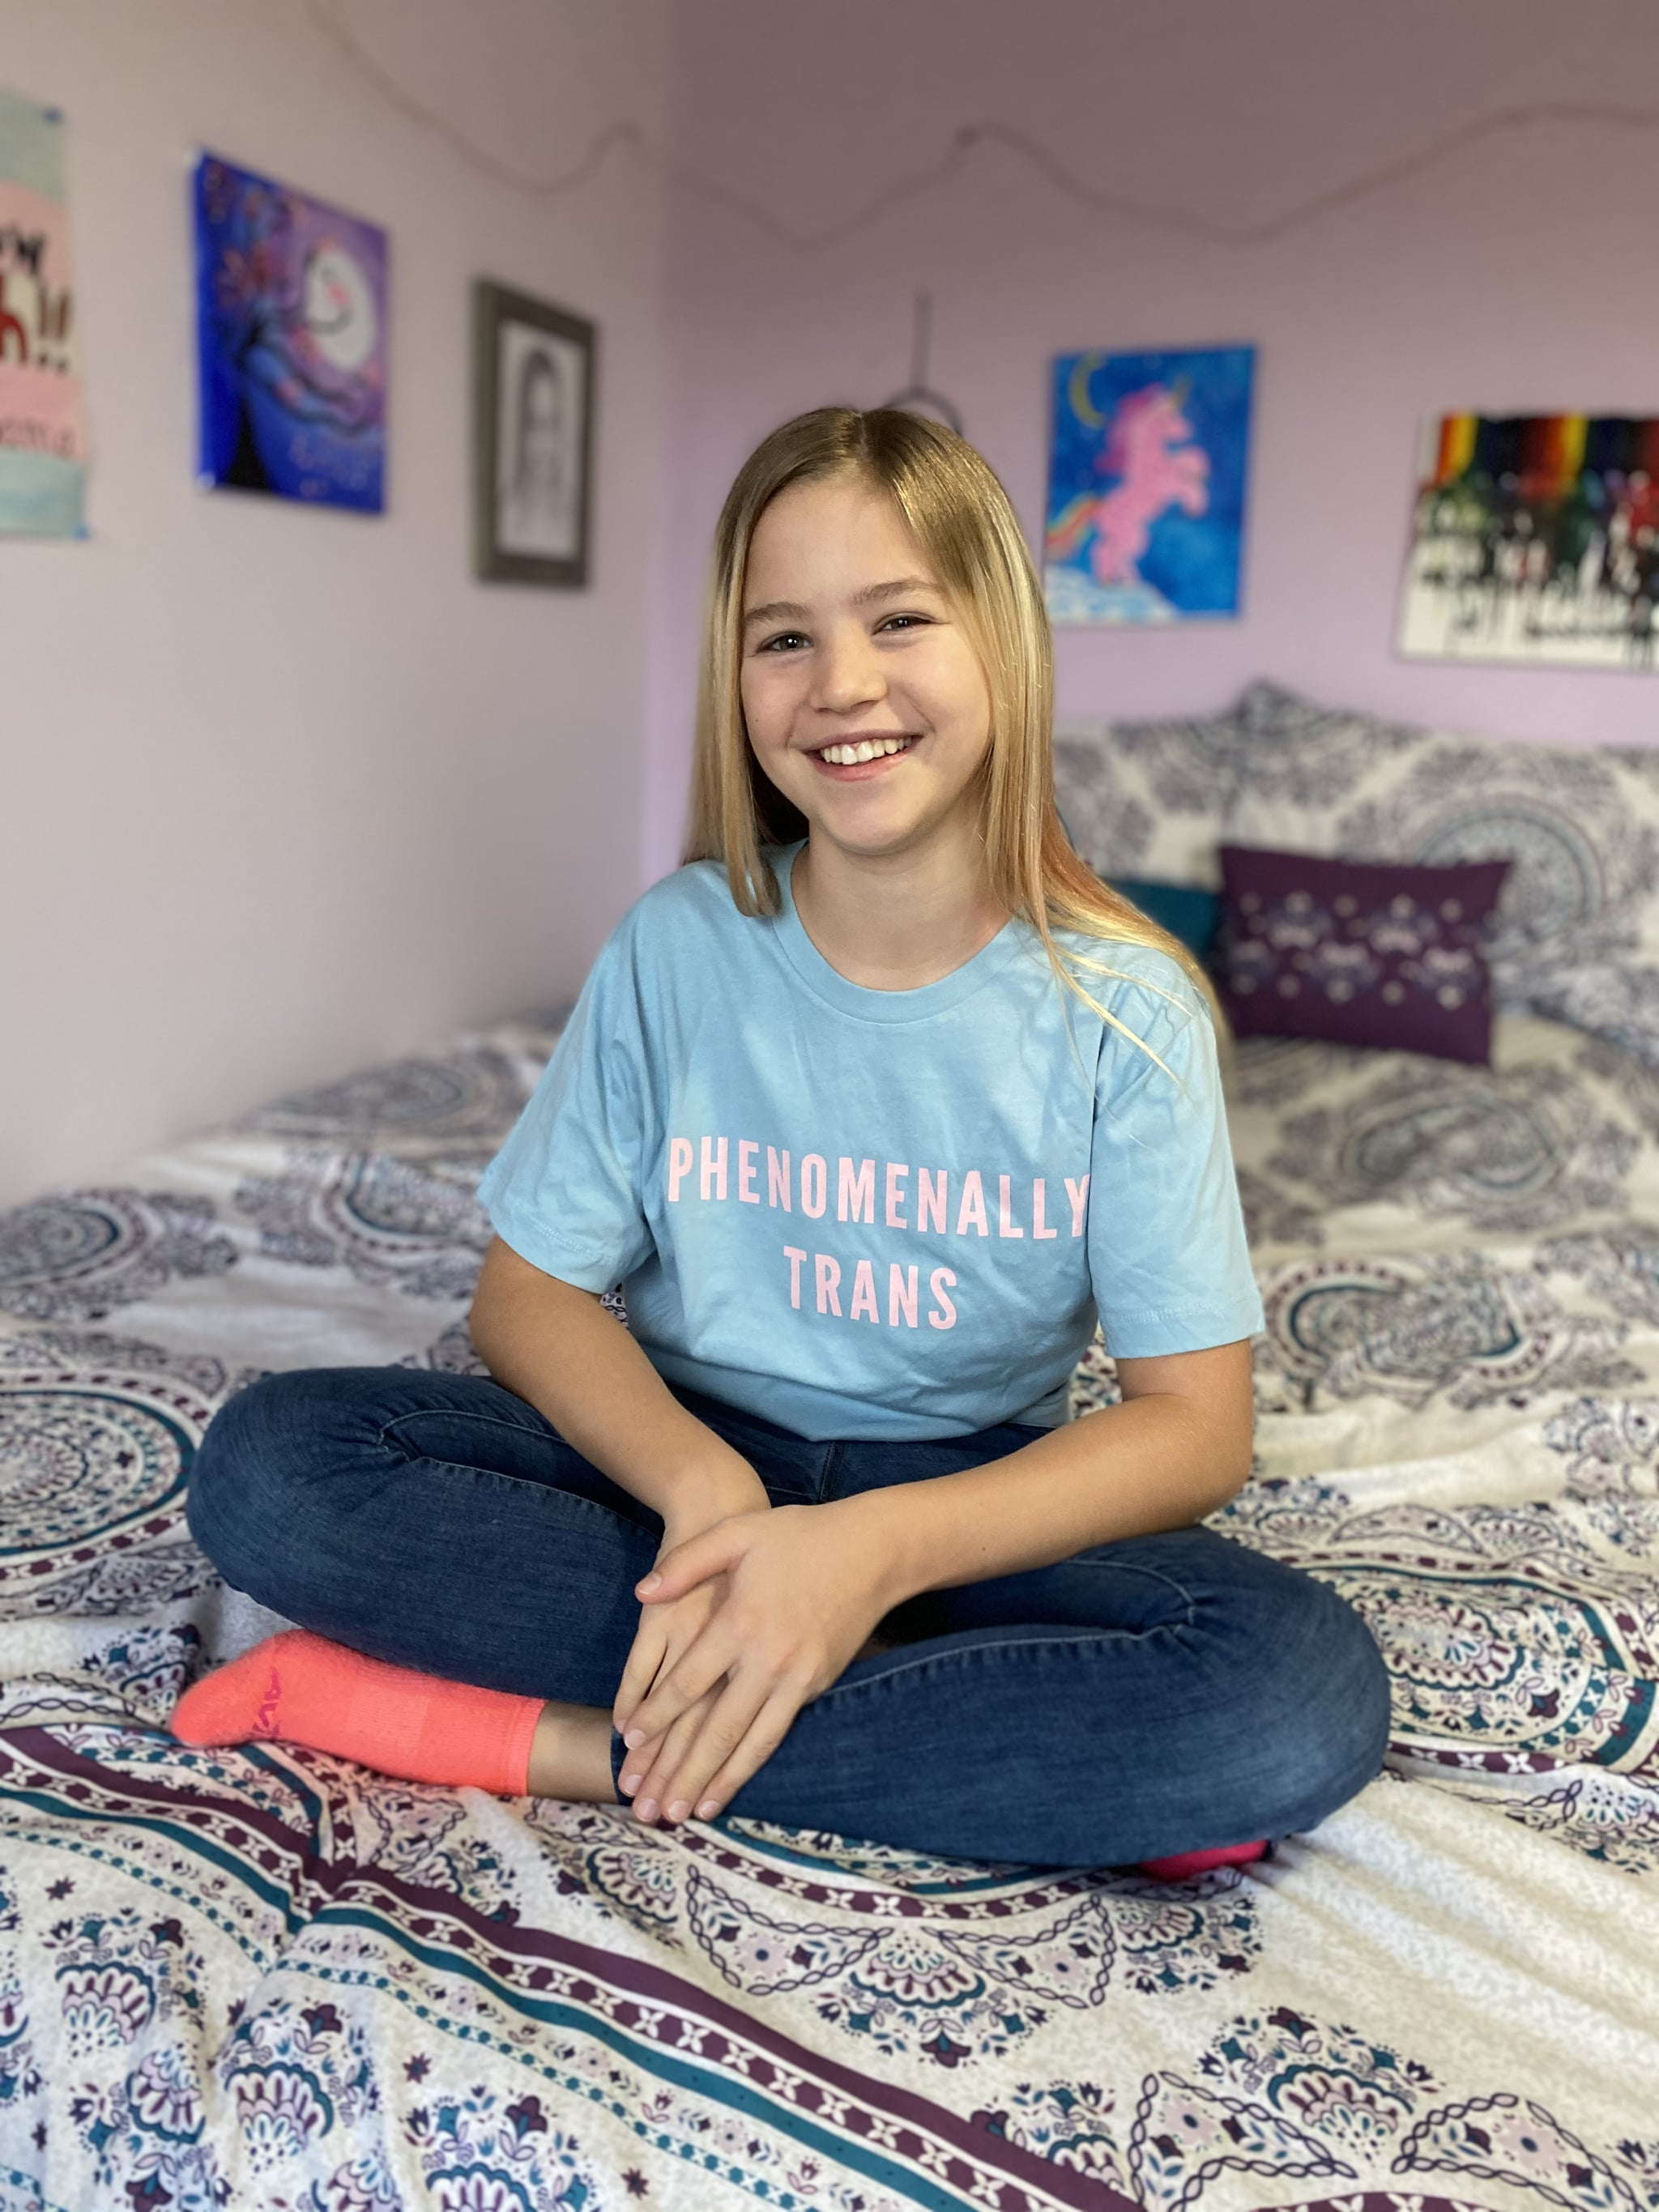 """13-Yr-Outdated Trans Activist Rebekah Bruesehoff: """"My Gender Is the Least Exciting Thing About Me"""""""